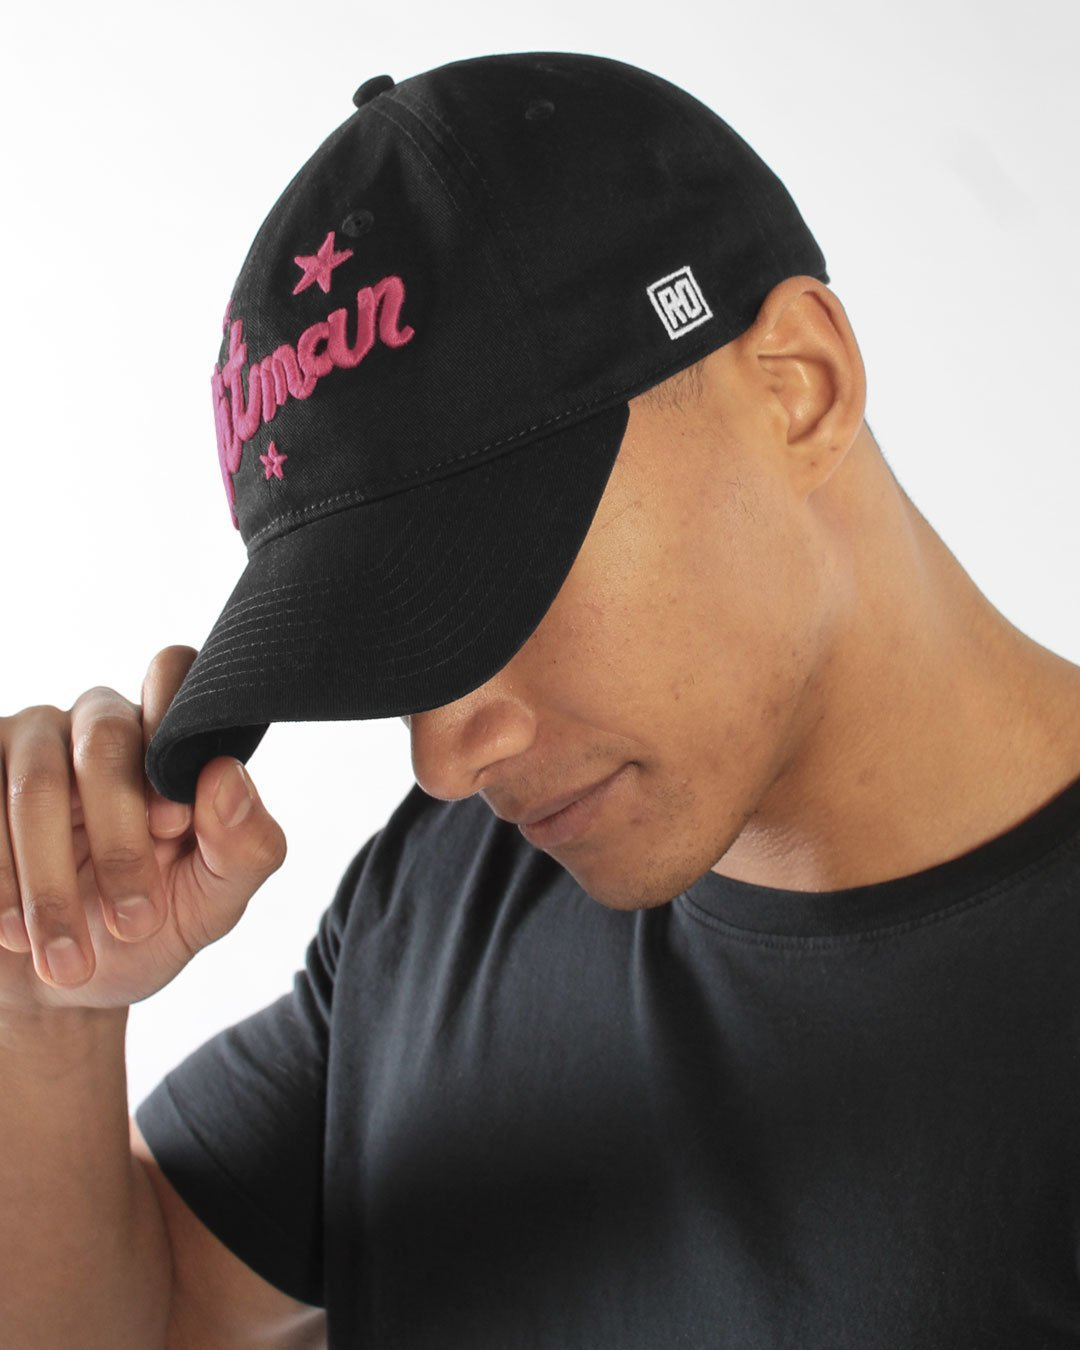 Bret Hart Hitman Adjustable Hat - Roots of Inc dba Roots of Fight